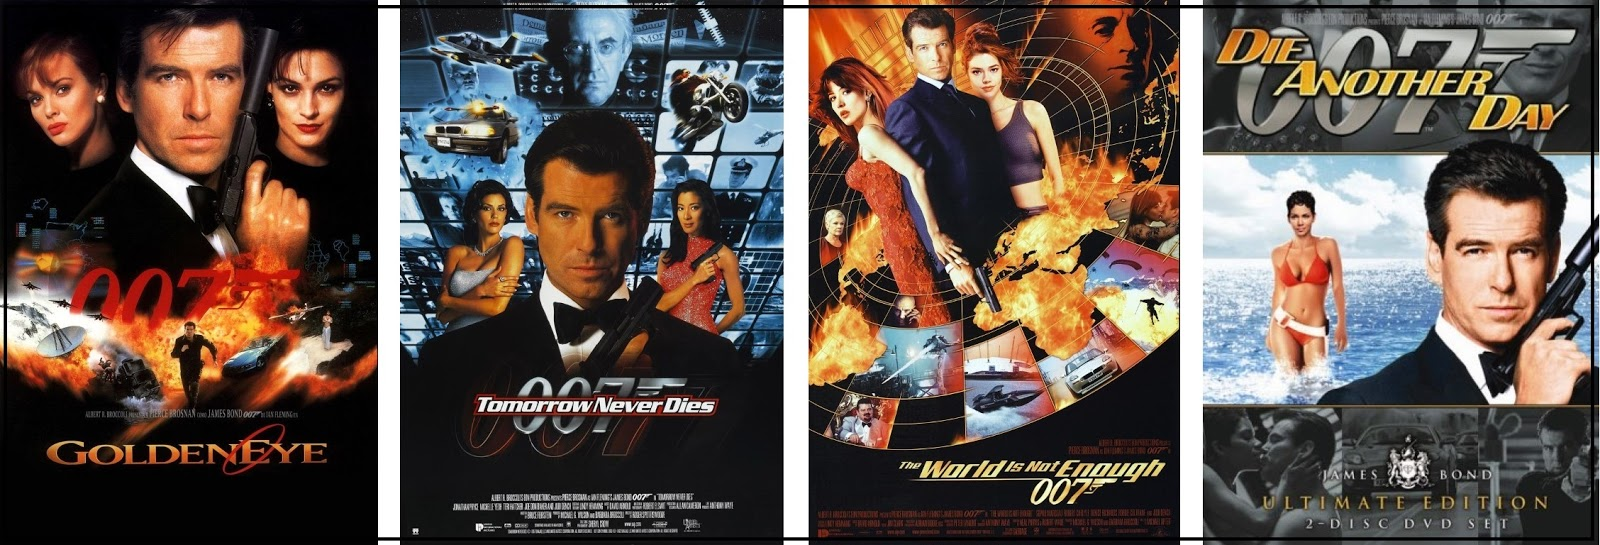 james bond 007 goldeneye movie